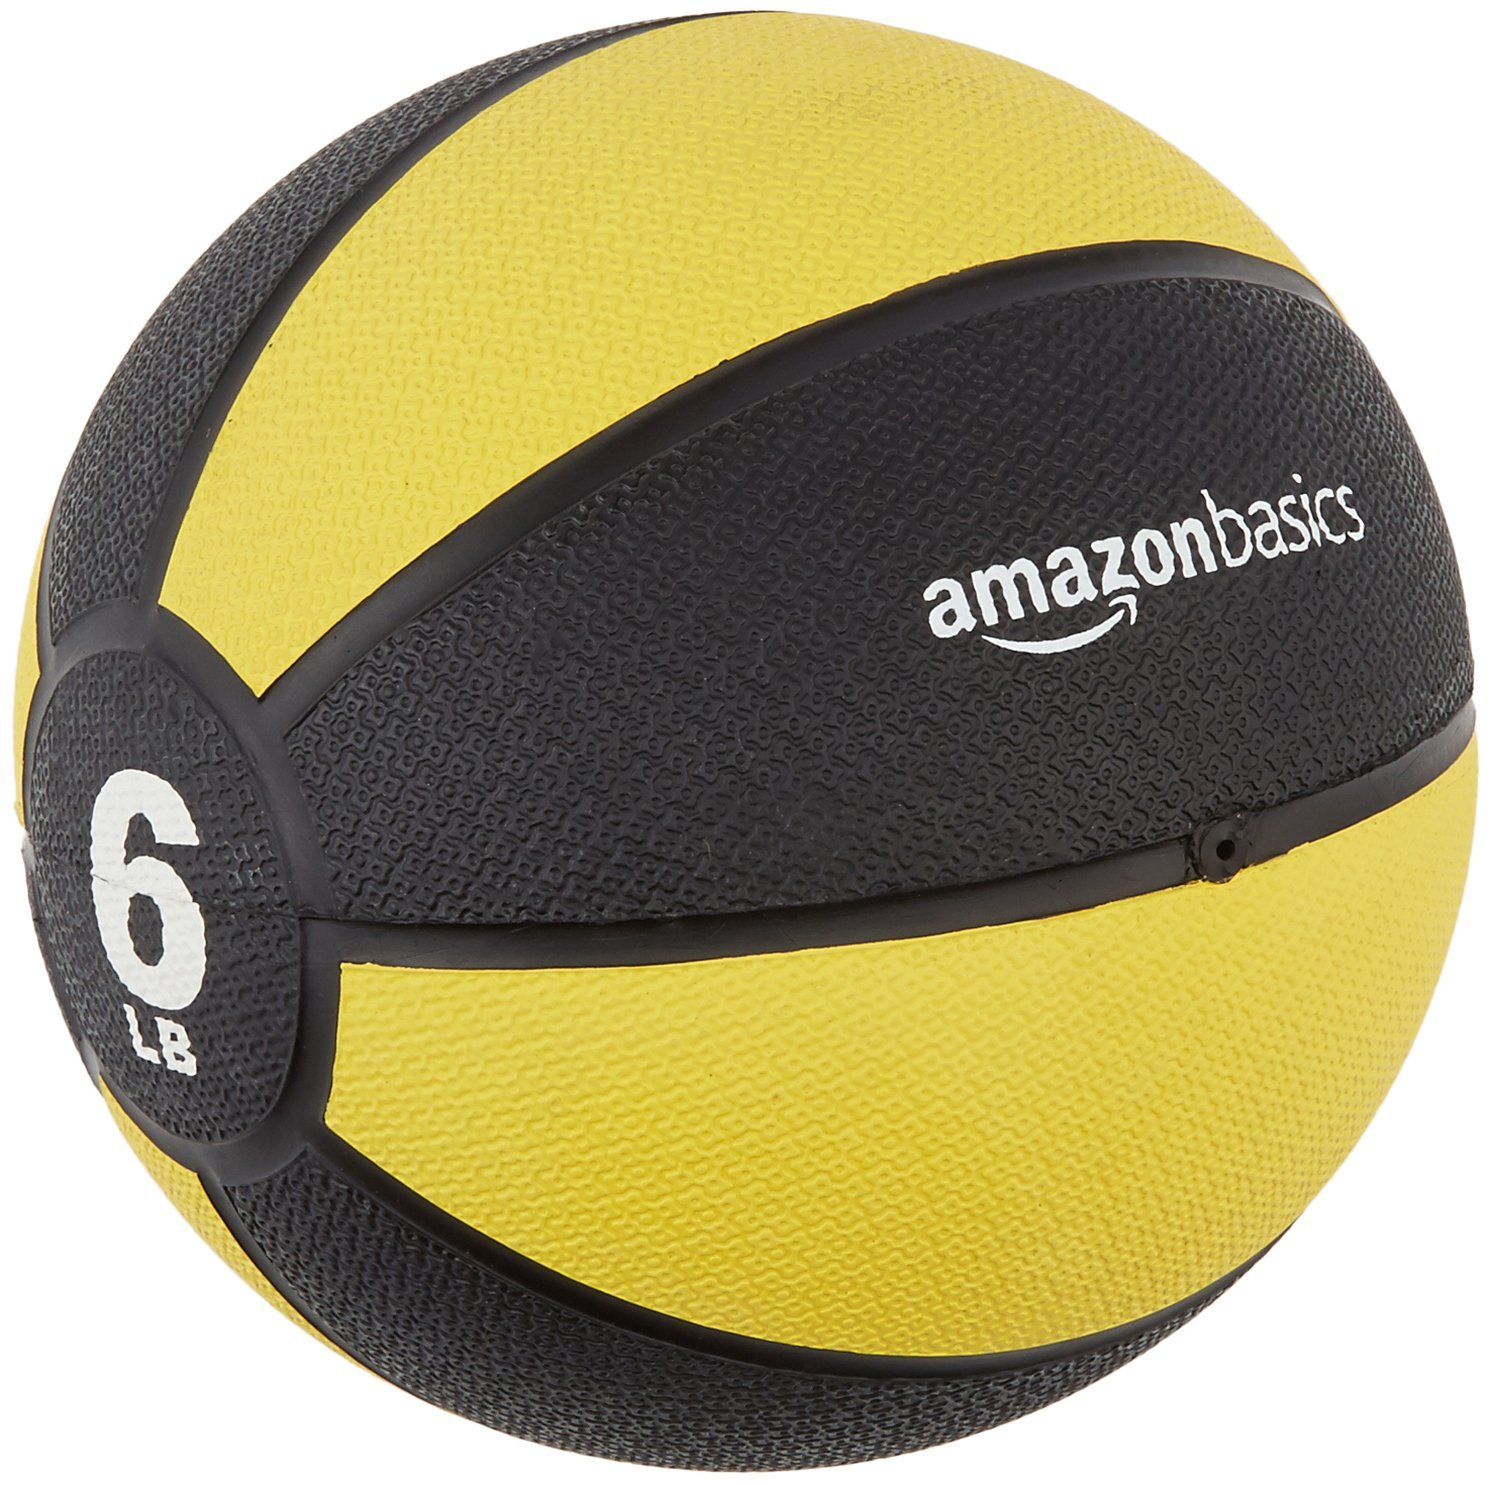 image Rubber ball a personal favorite item